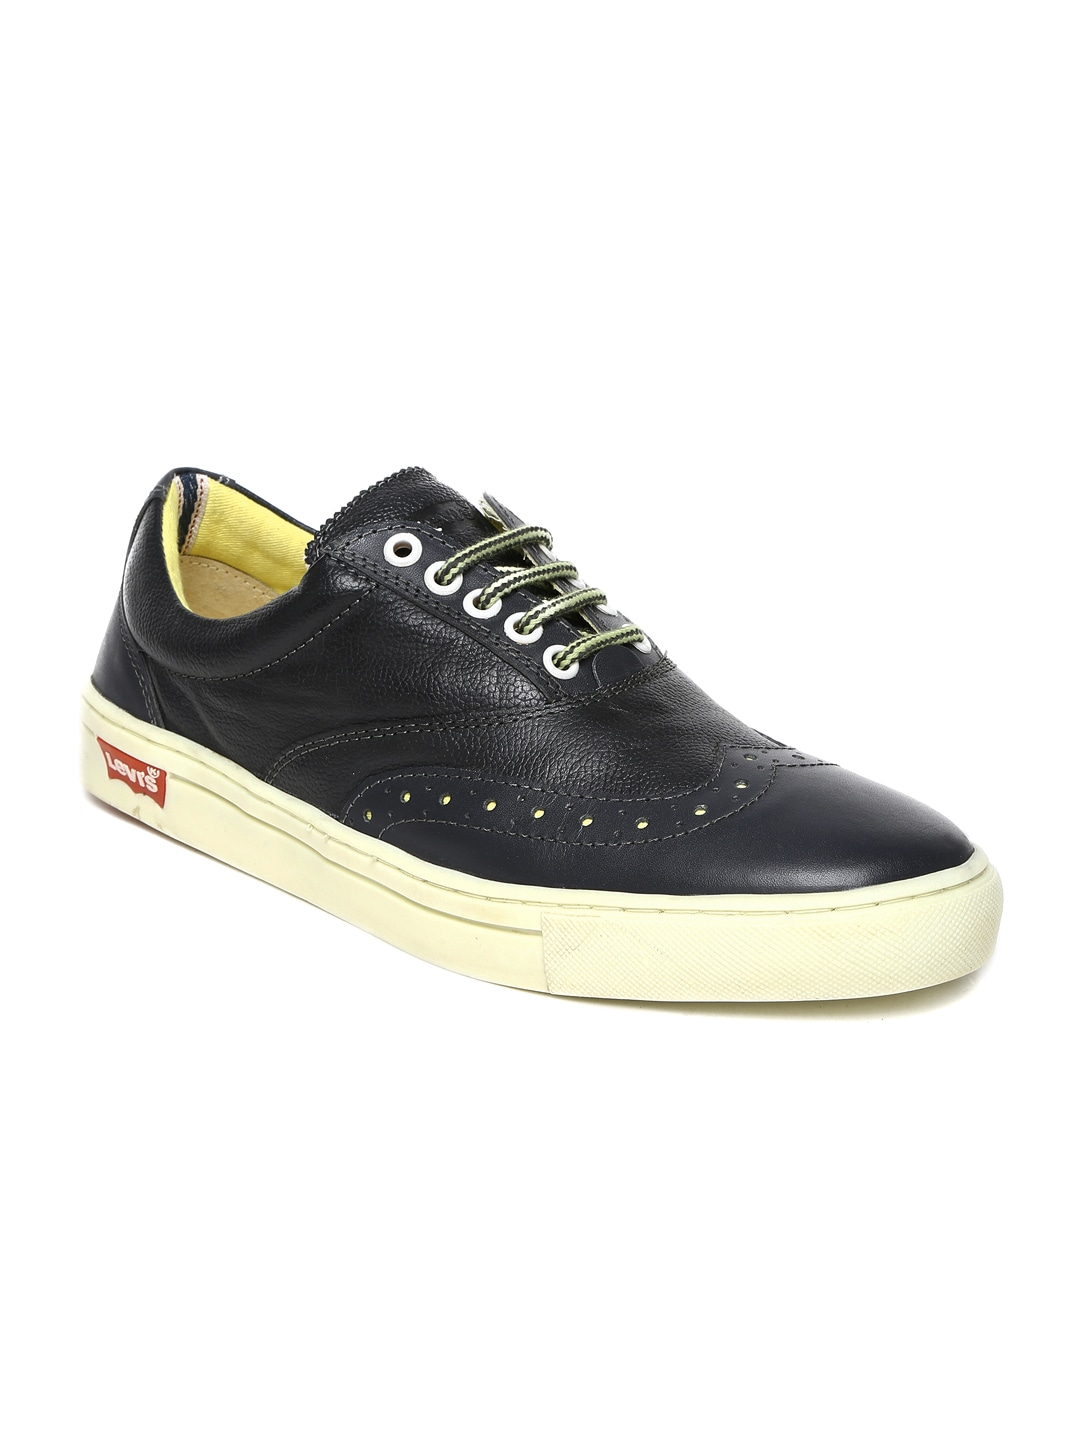 Levis Men Charcoal Grey Leather Casual Shoes